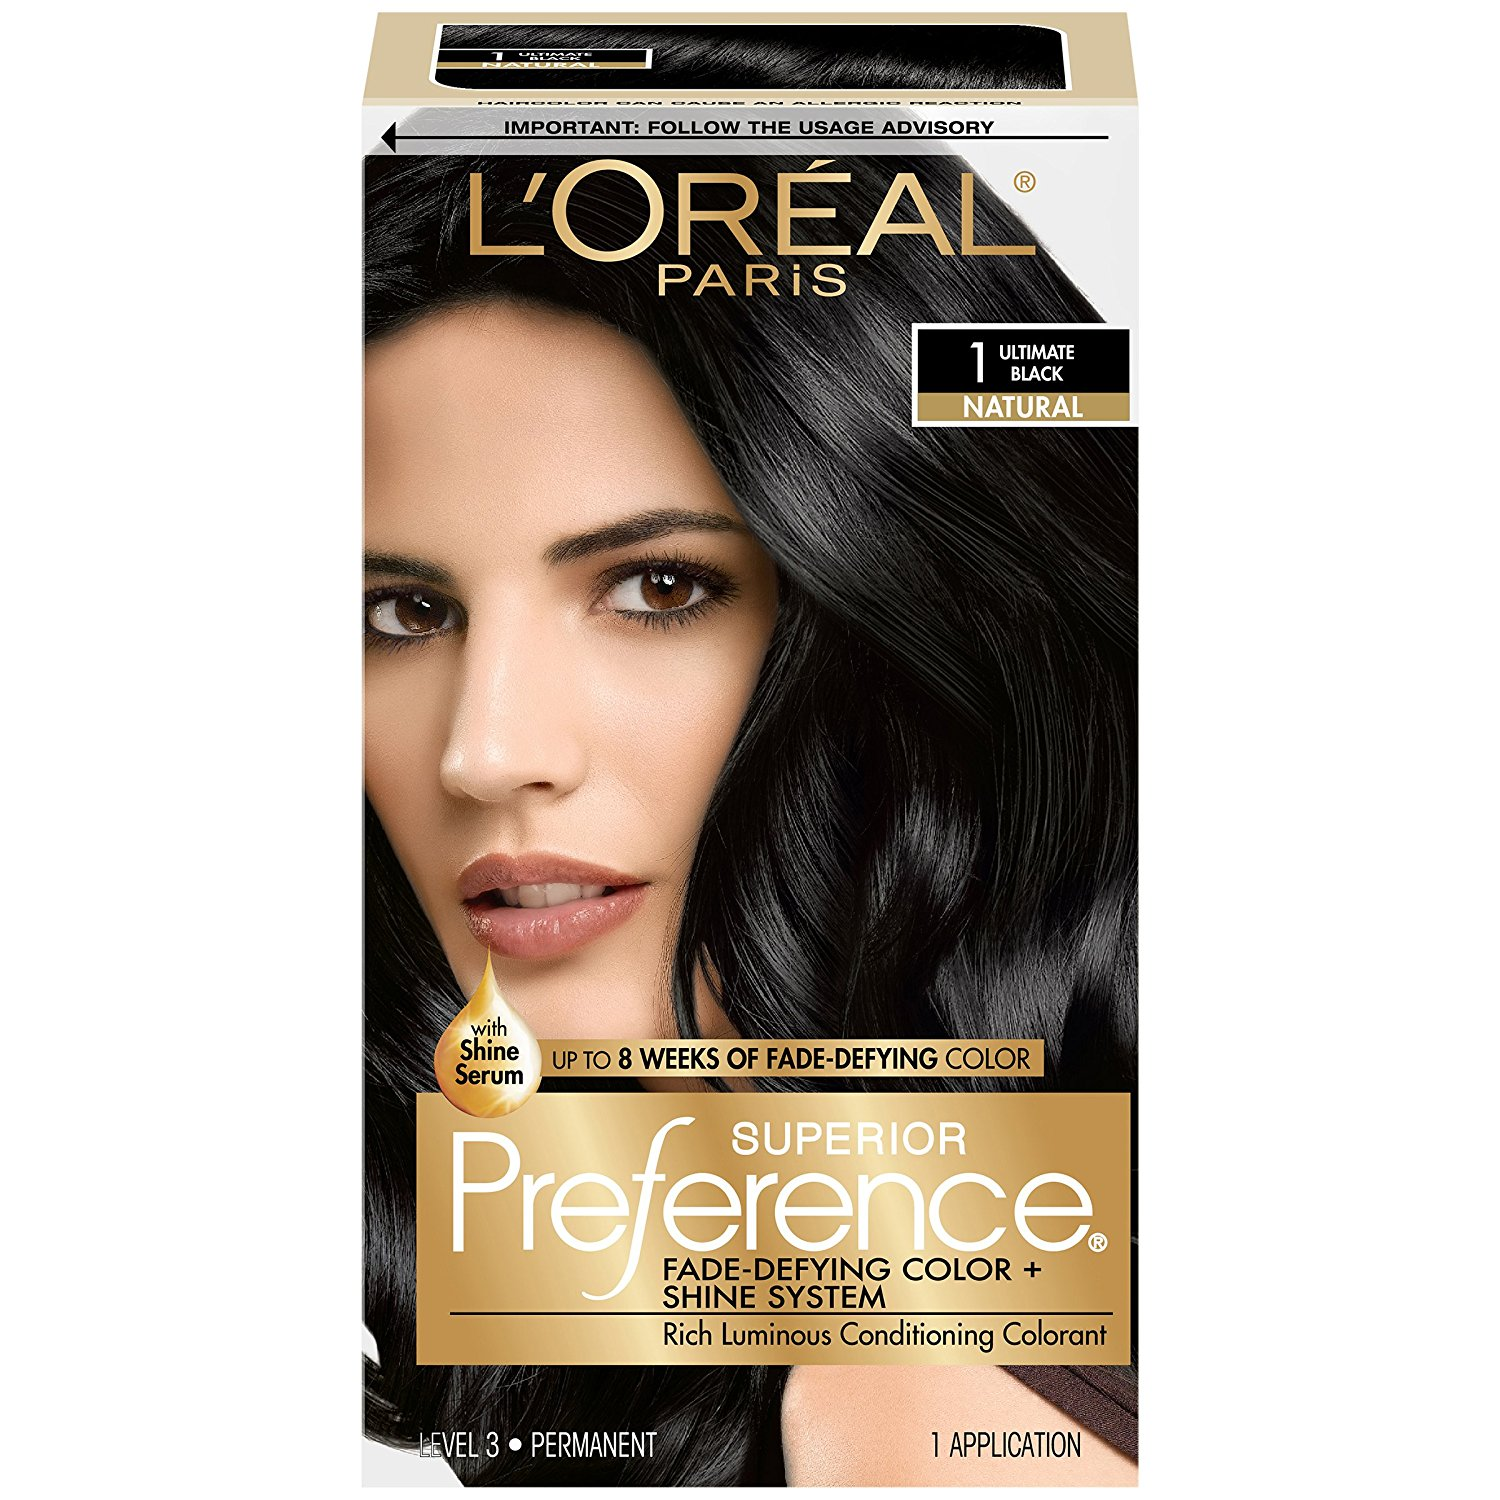 Loreal Paris Superior Preference Fade Defying Color Shine System